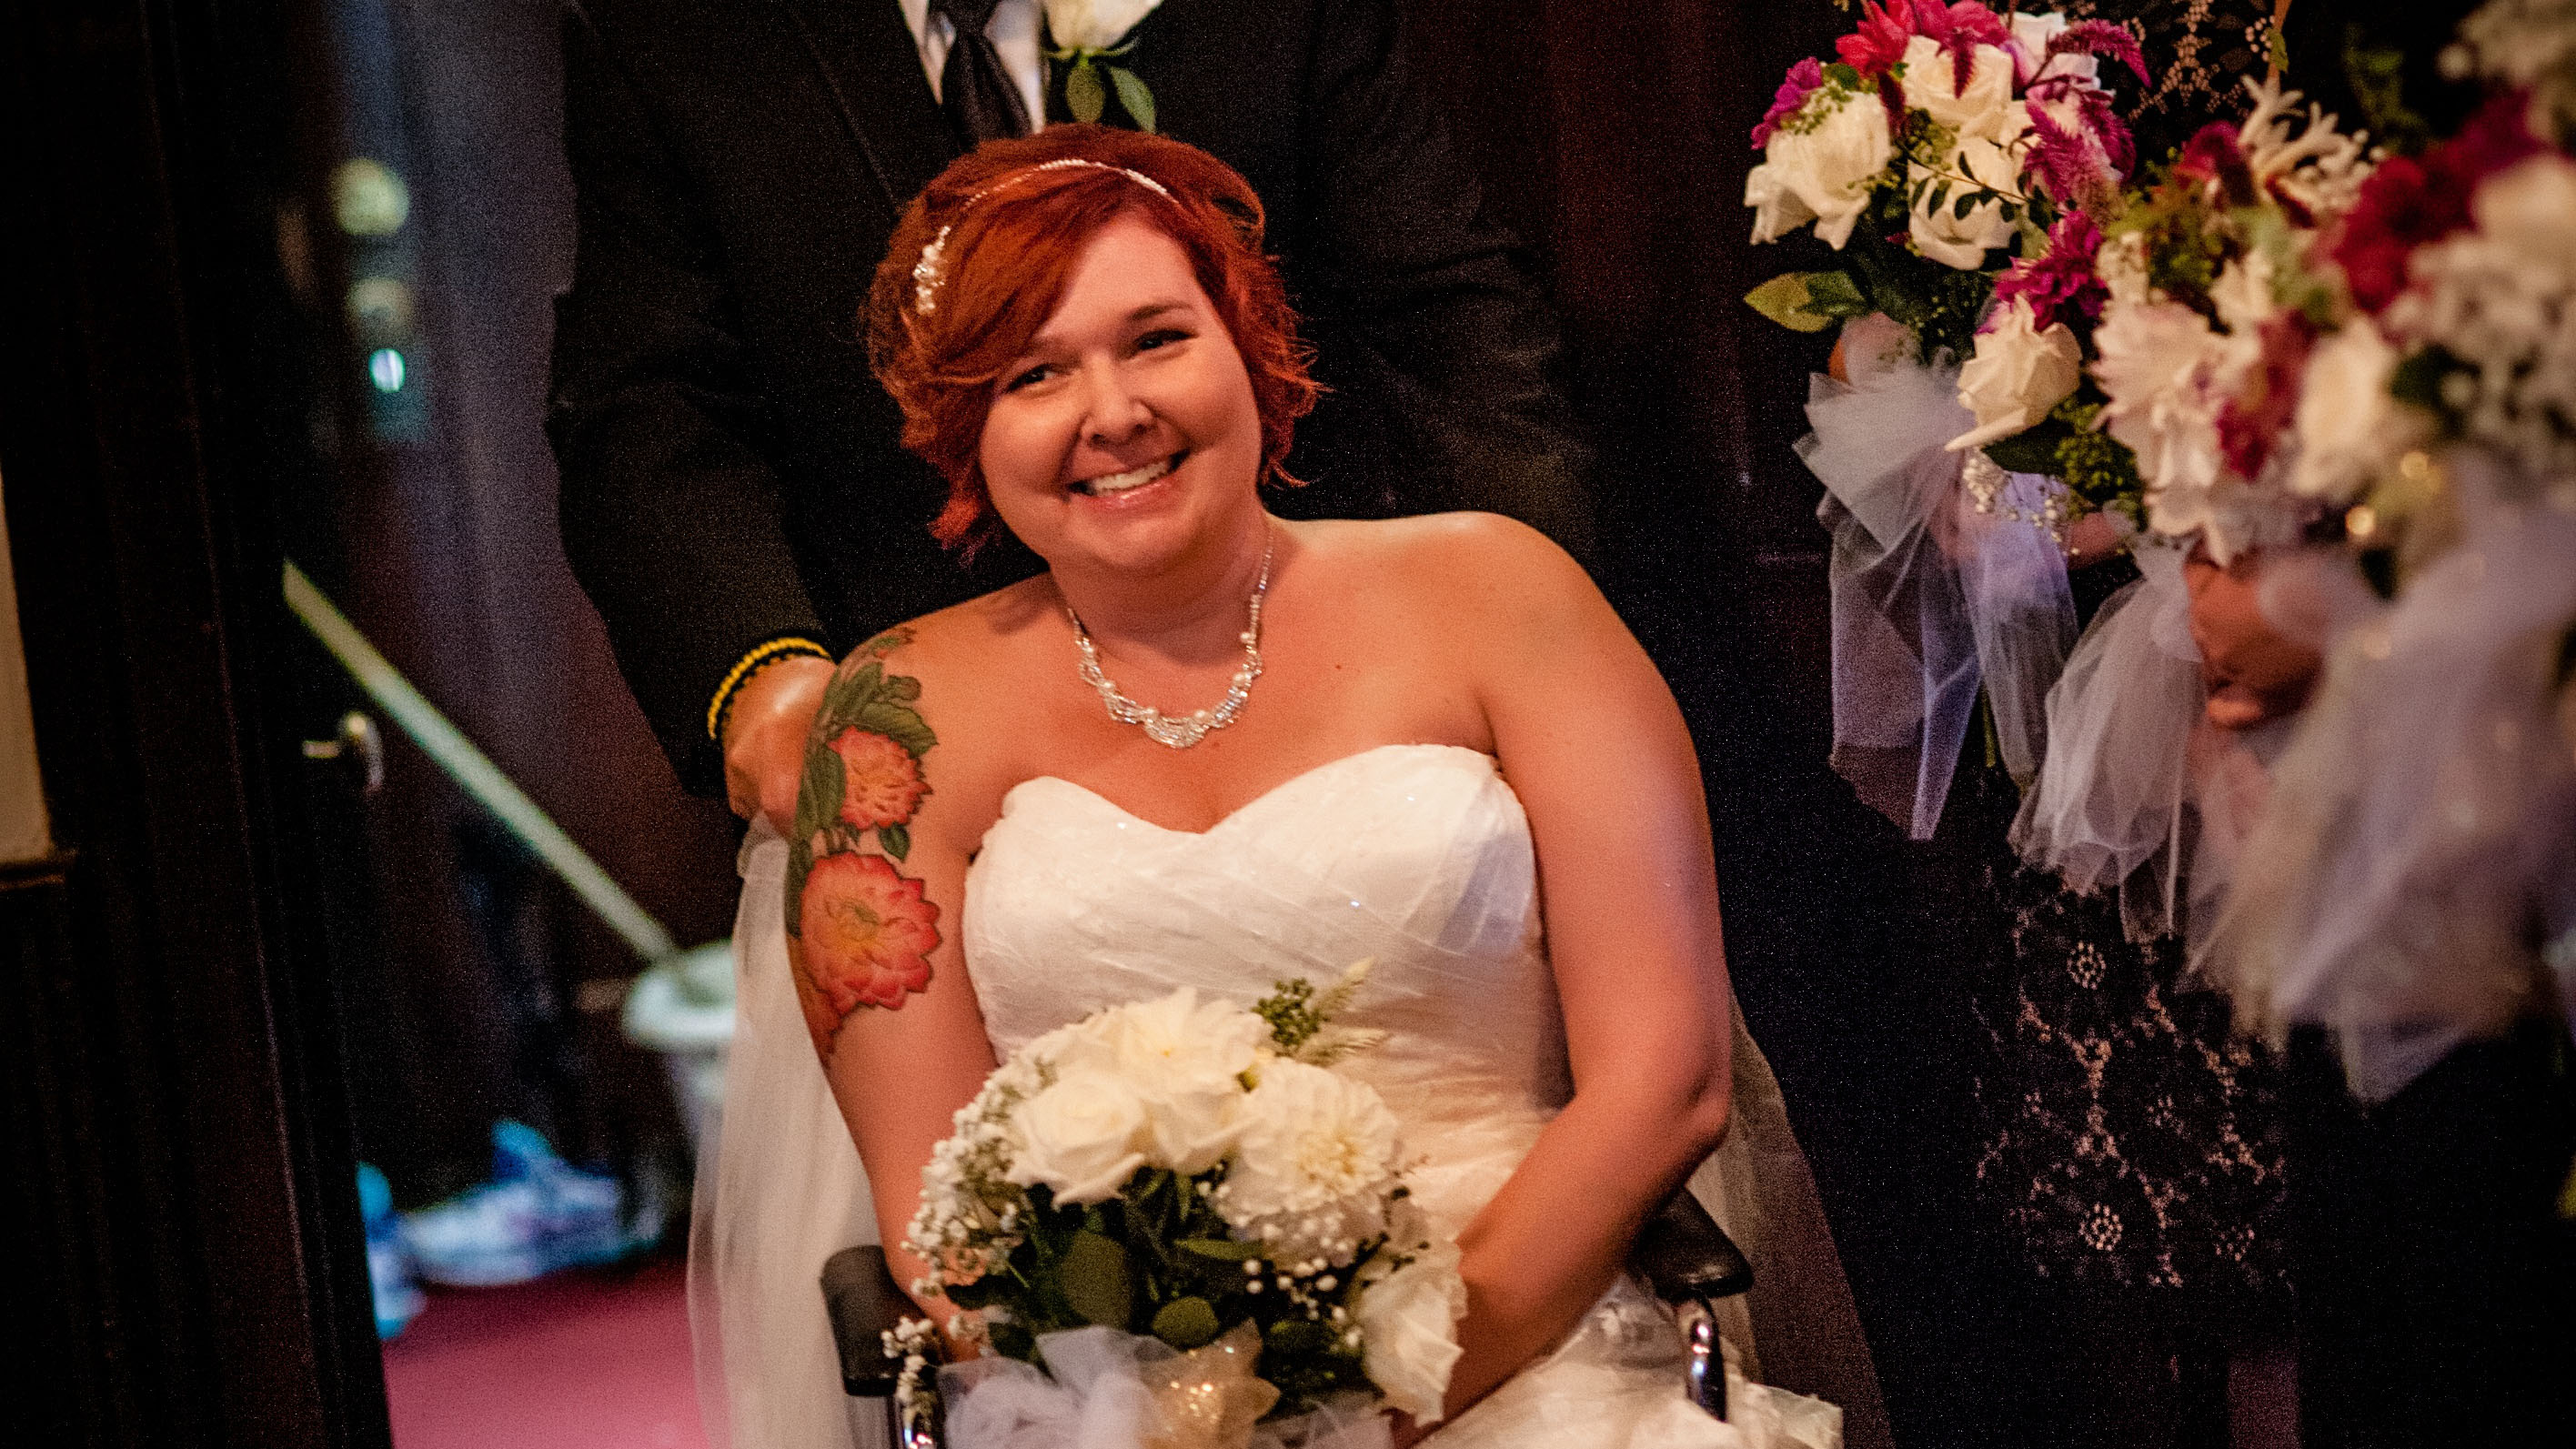 Cancer patient receives dream wedding during treatment